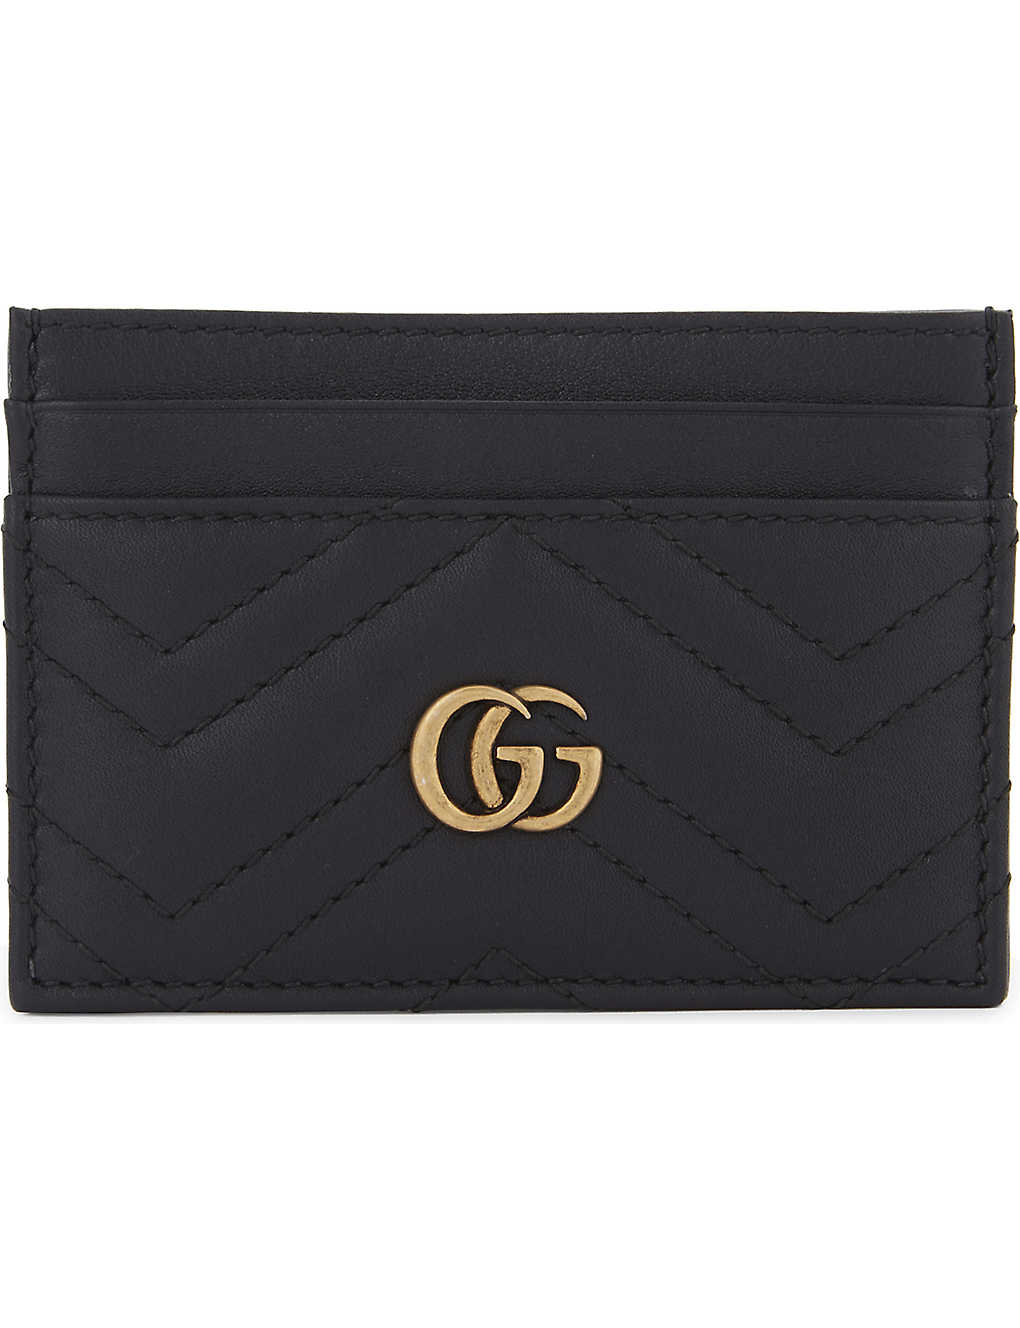 24c55877e4ad0c GUCCI - GG Marmont leather card holder | Selfridges.com